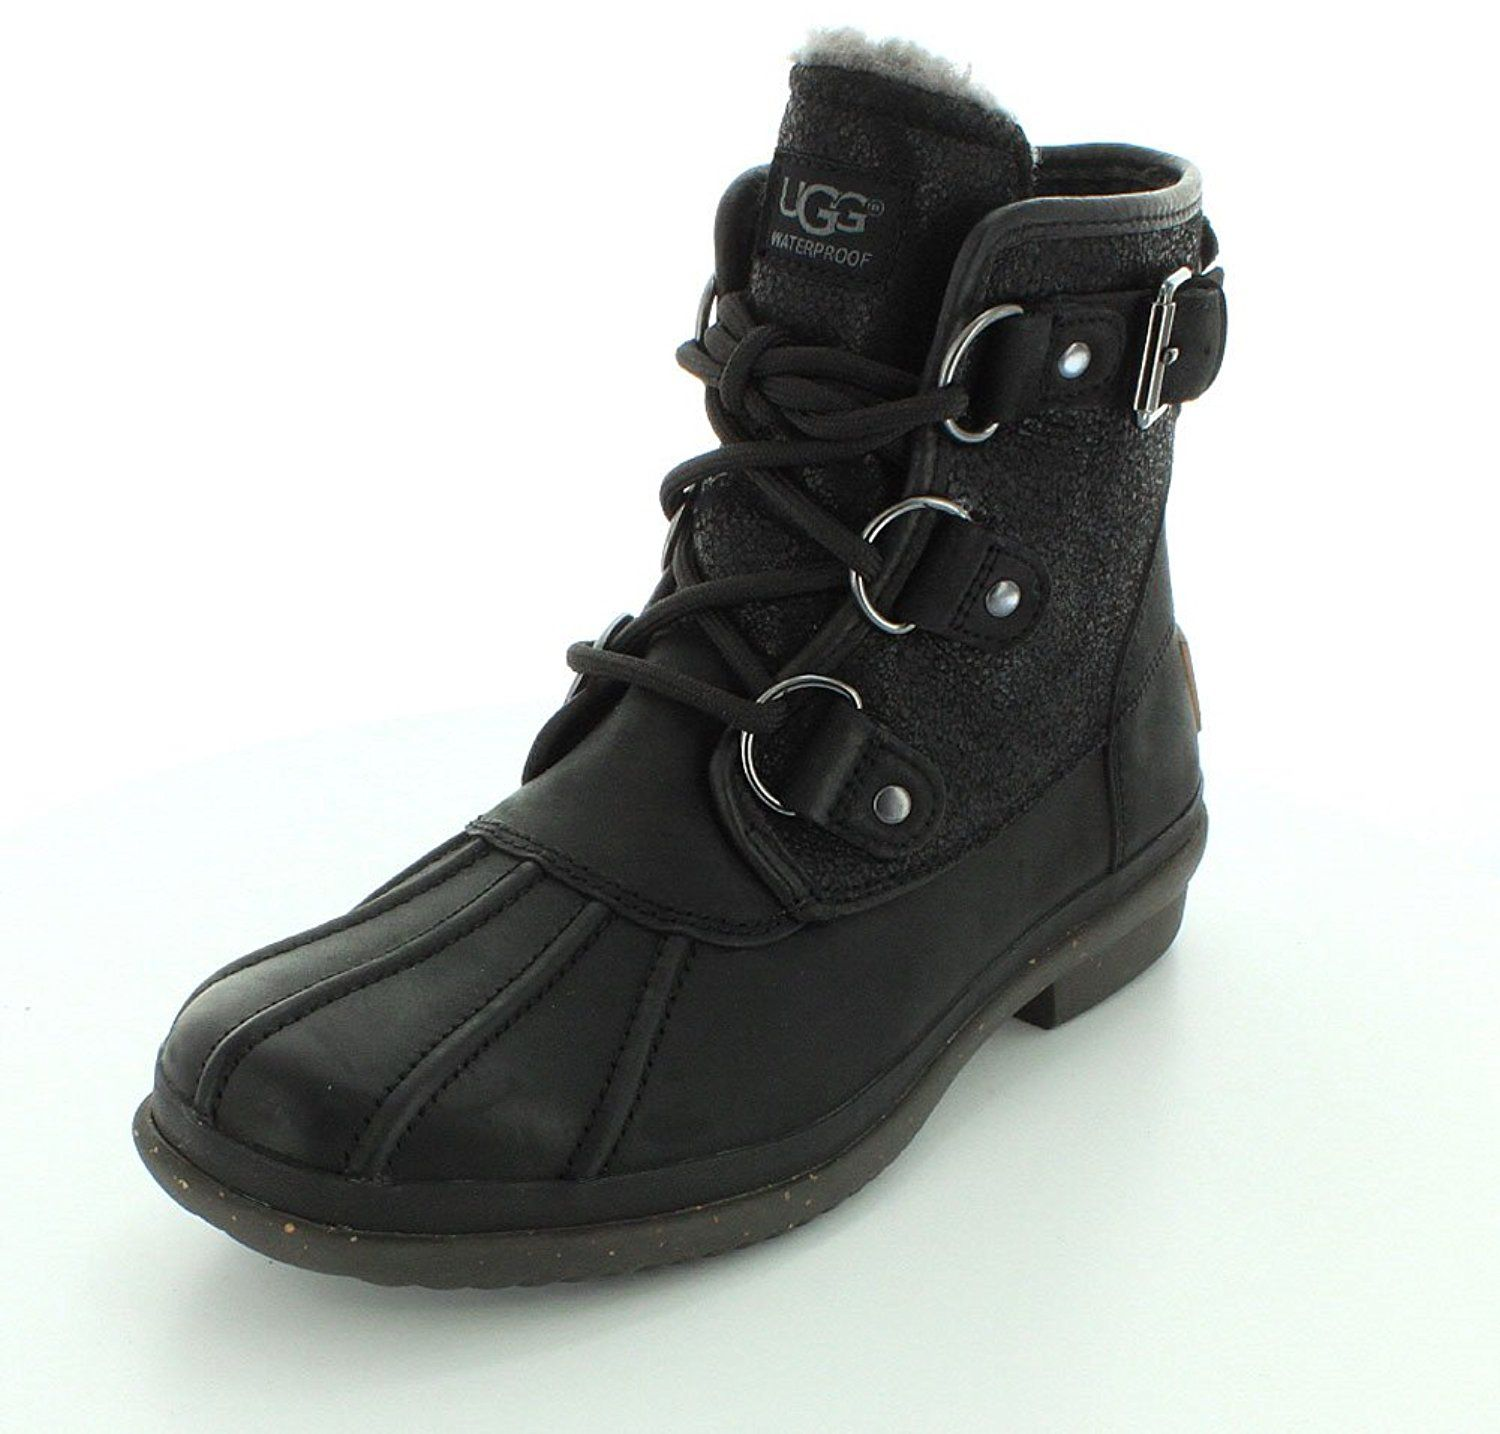 938812aa1e2f0 UGG Australia Women's Cecile Boot >>> Find out more about the great product  at the image link. (Amazon affiliate link)